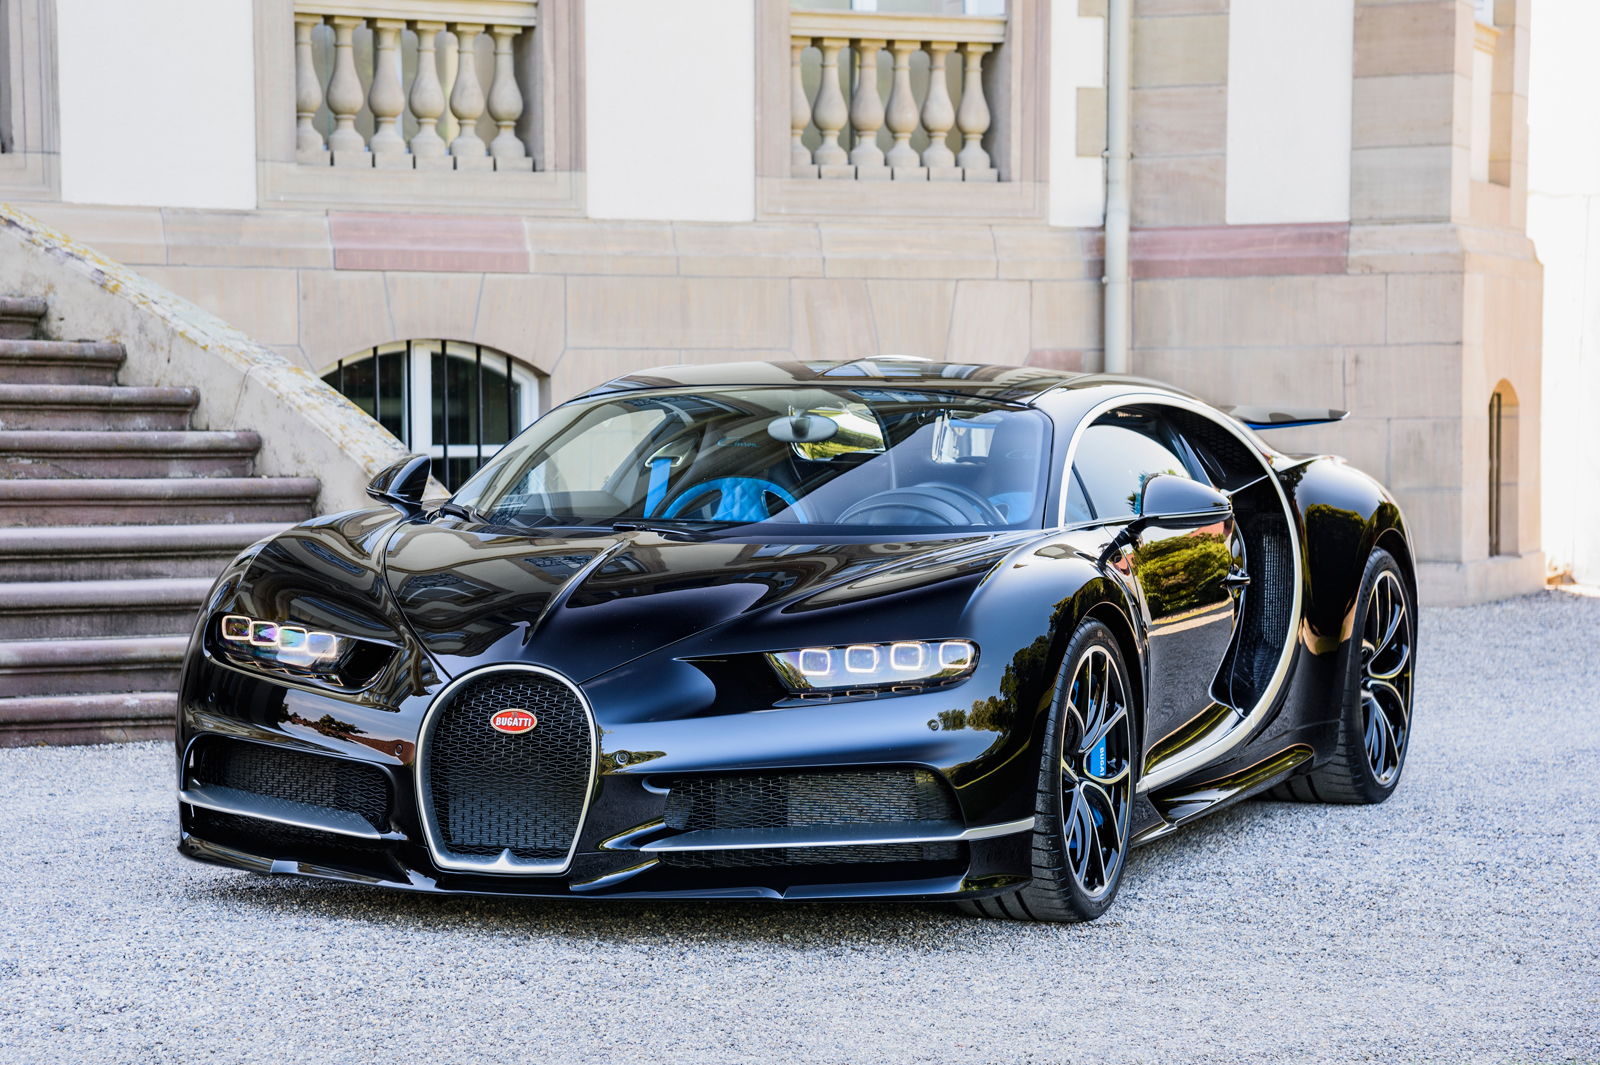 World Most Costly Car Wallpaper Bugatti Chiron Won T Hit 285mph Here S Why Moto Networks